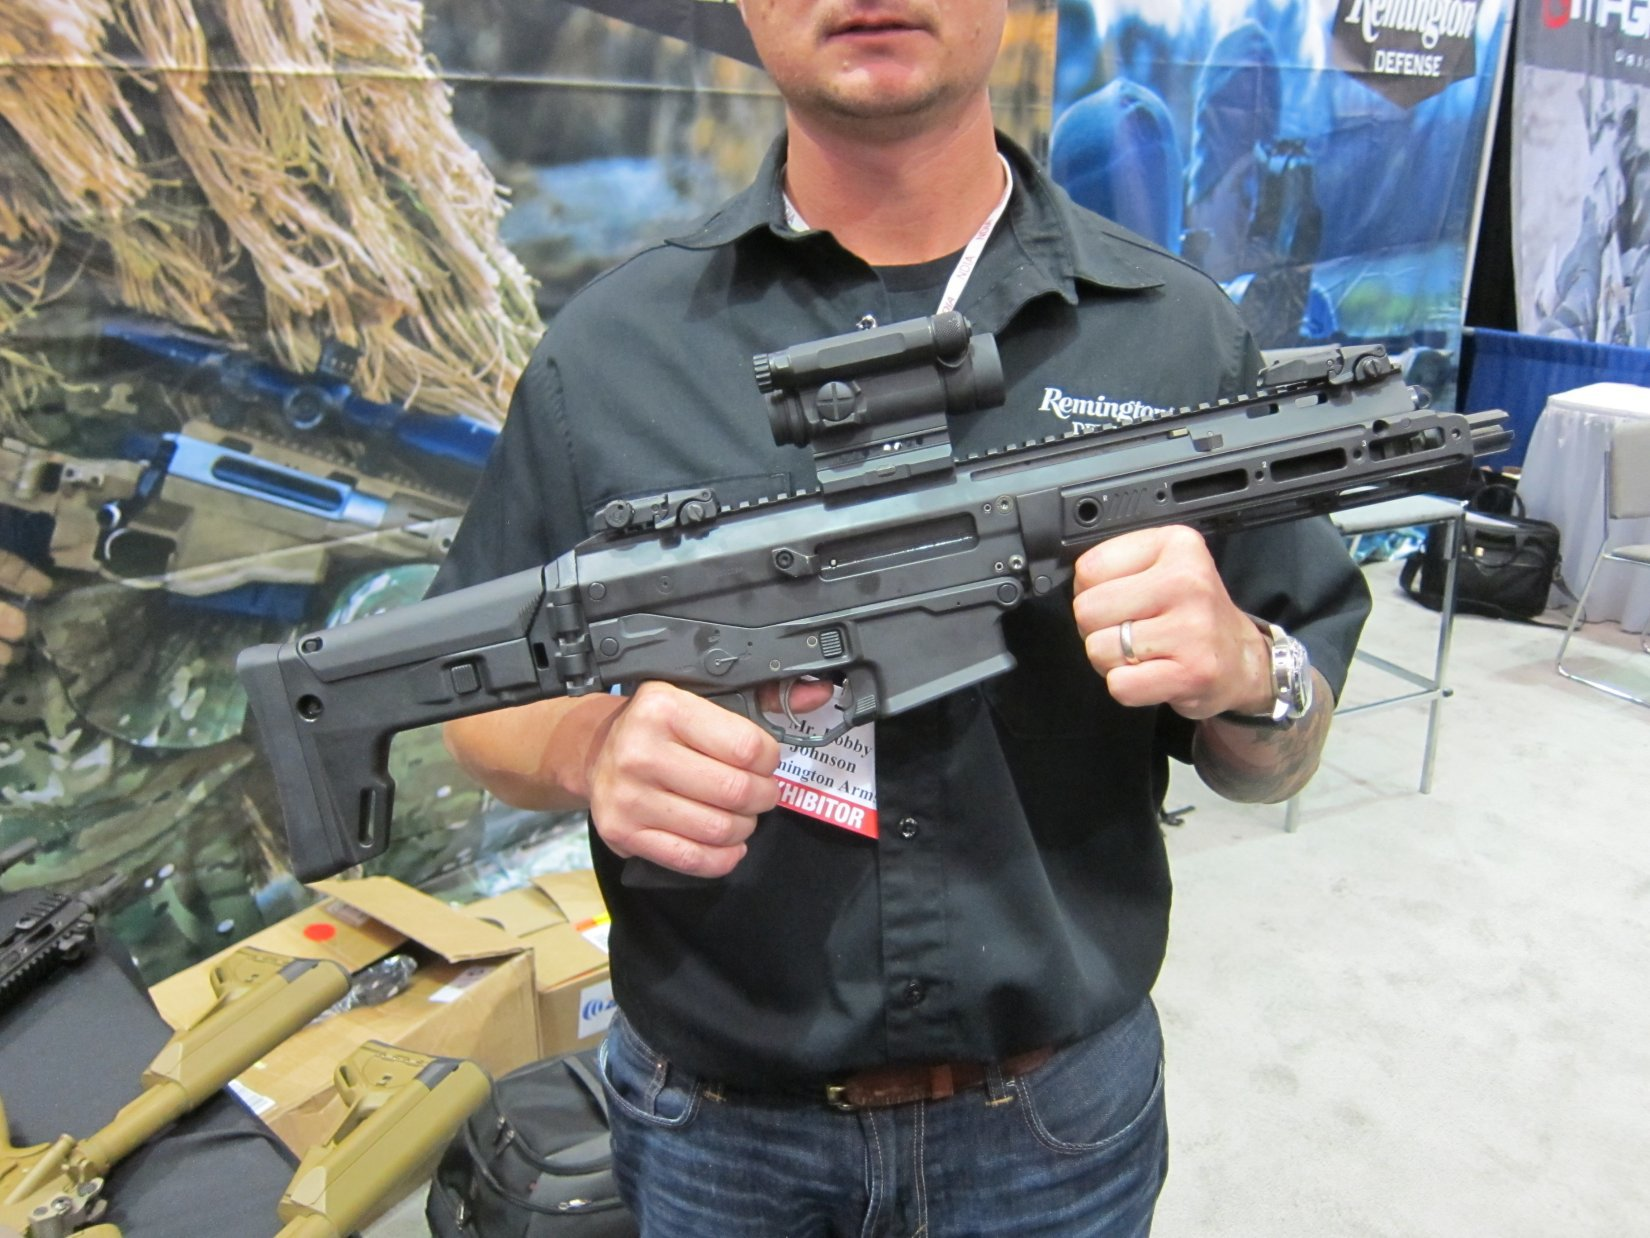 Remington ACR PDW SBR (Adaptive Combat Rifle Personal Defense Weapon Short Barreled Rifle) and Remington Individual Carbine (IC) Candidate: Remington Defense Assault Rifles/Carbines/PDWs at NDIA Joint Armaments Conference 2012 (Video!)